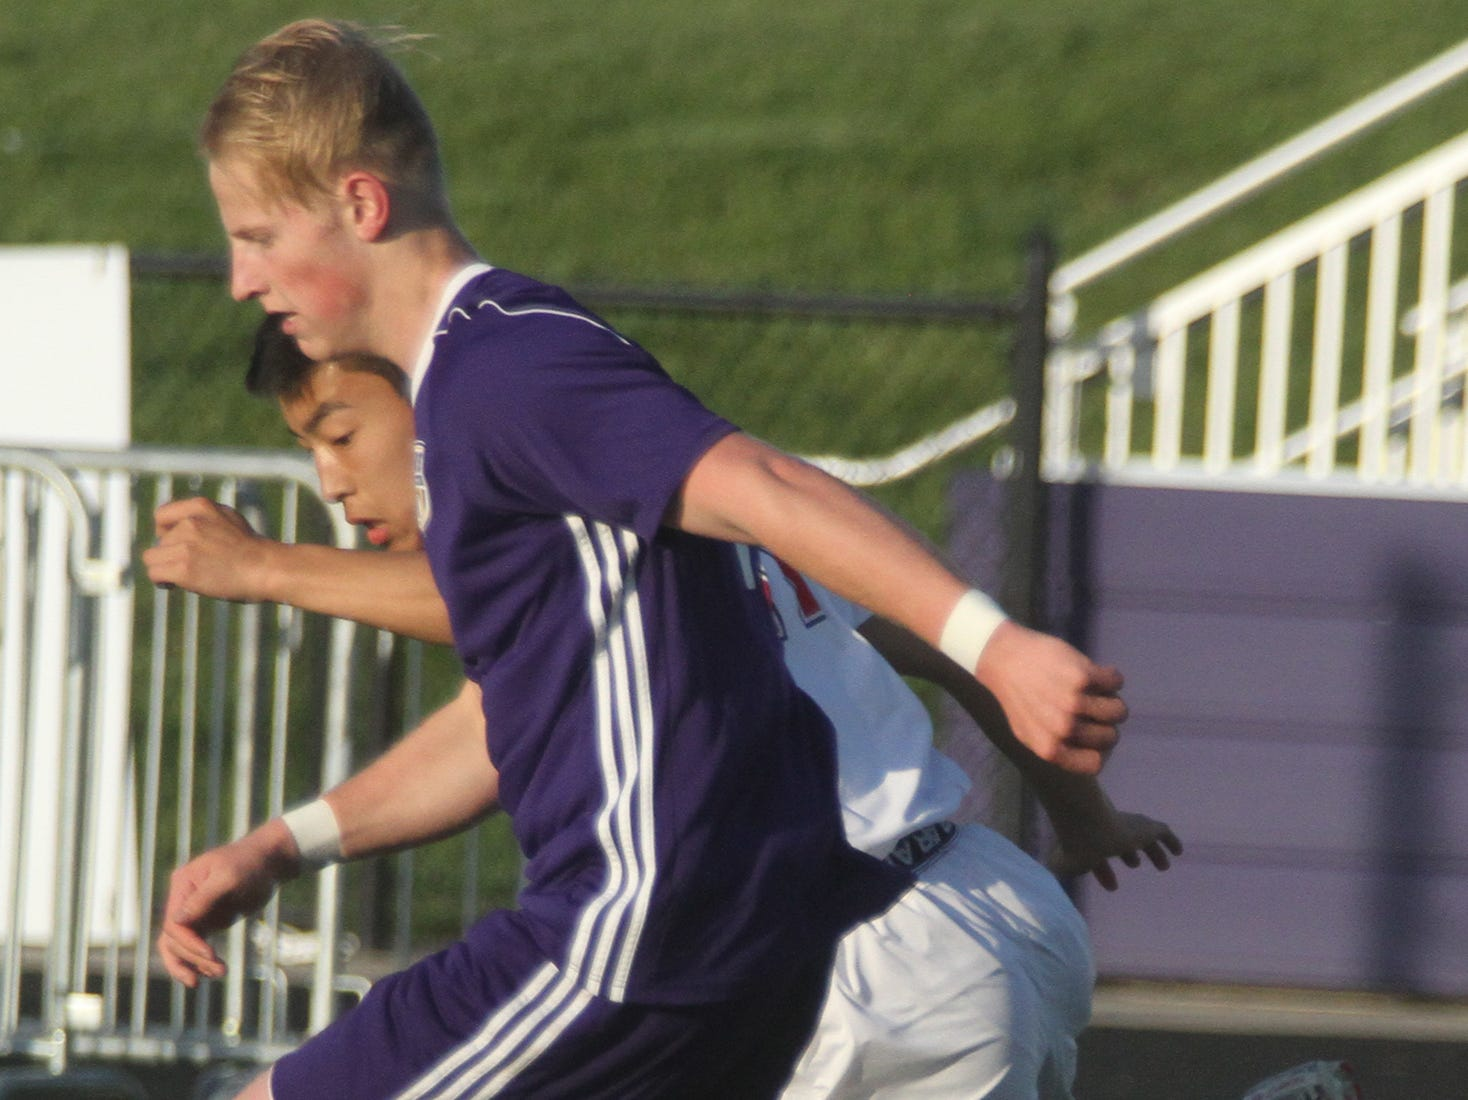 Indianola junior Peyton Boozell tries to get down the field while being defended by Newton junior William Cheng. Indianola beat Newton 2-0 at home in a Little Hawkeye Conference game.